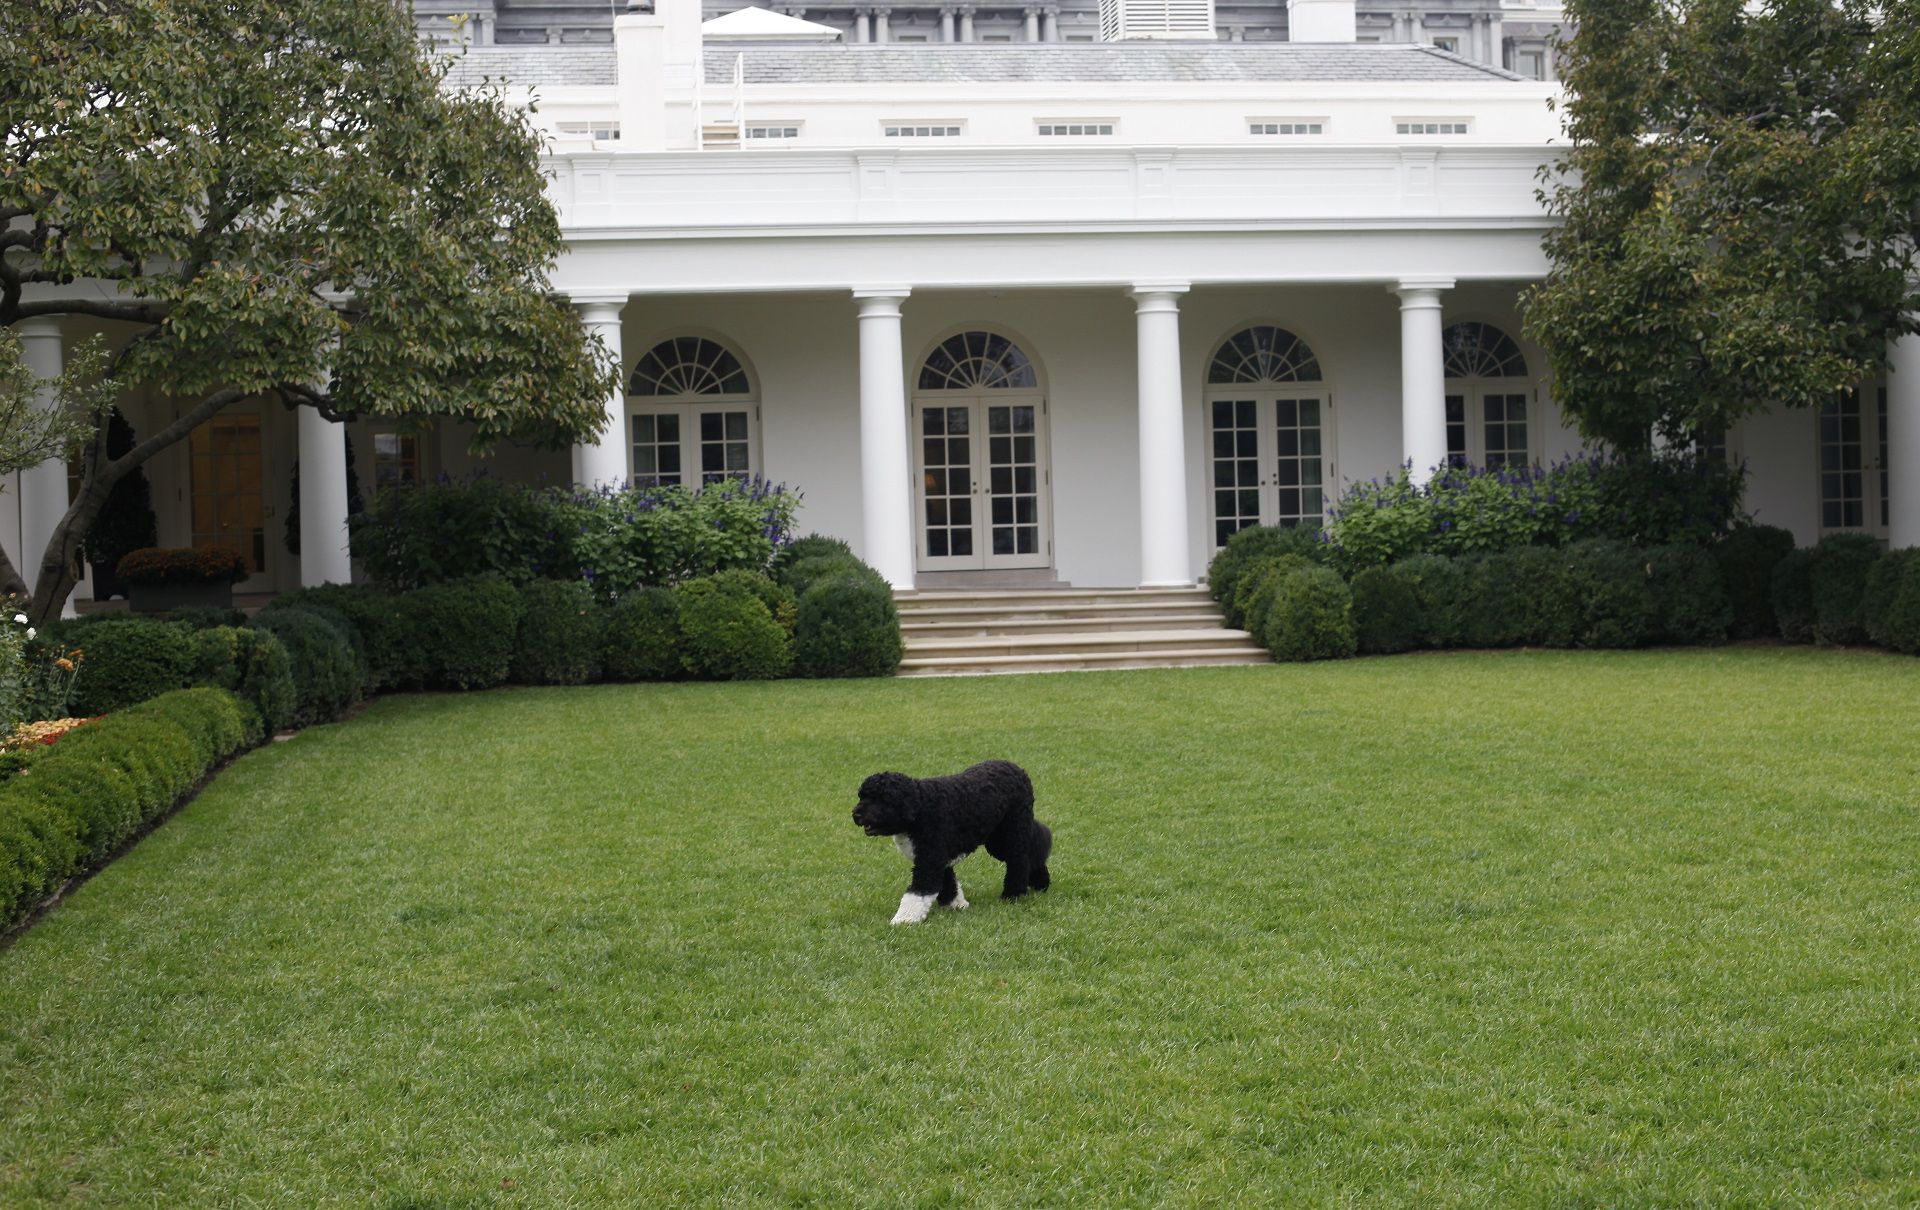 FILE - In this Oct. 11, 2011, file photo Bo, the Obama family dog, walks in the Rose Garden of the White House in Washington. Former President Barack Obama's dog, Bo, died Saturday, May 8, 2021, after a battle with cancer, the Obamas said on social media. (AP Photo/Pablo Martinez Monsivais, File)